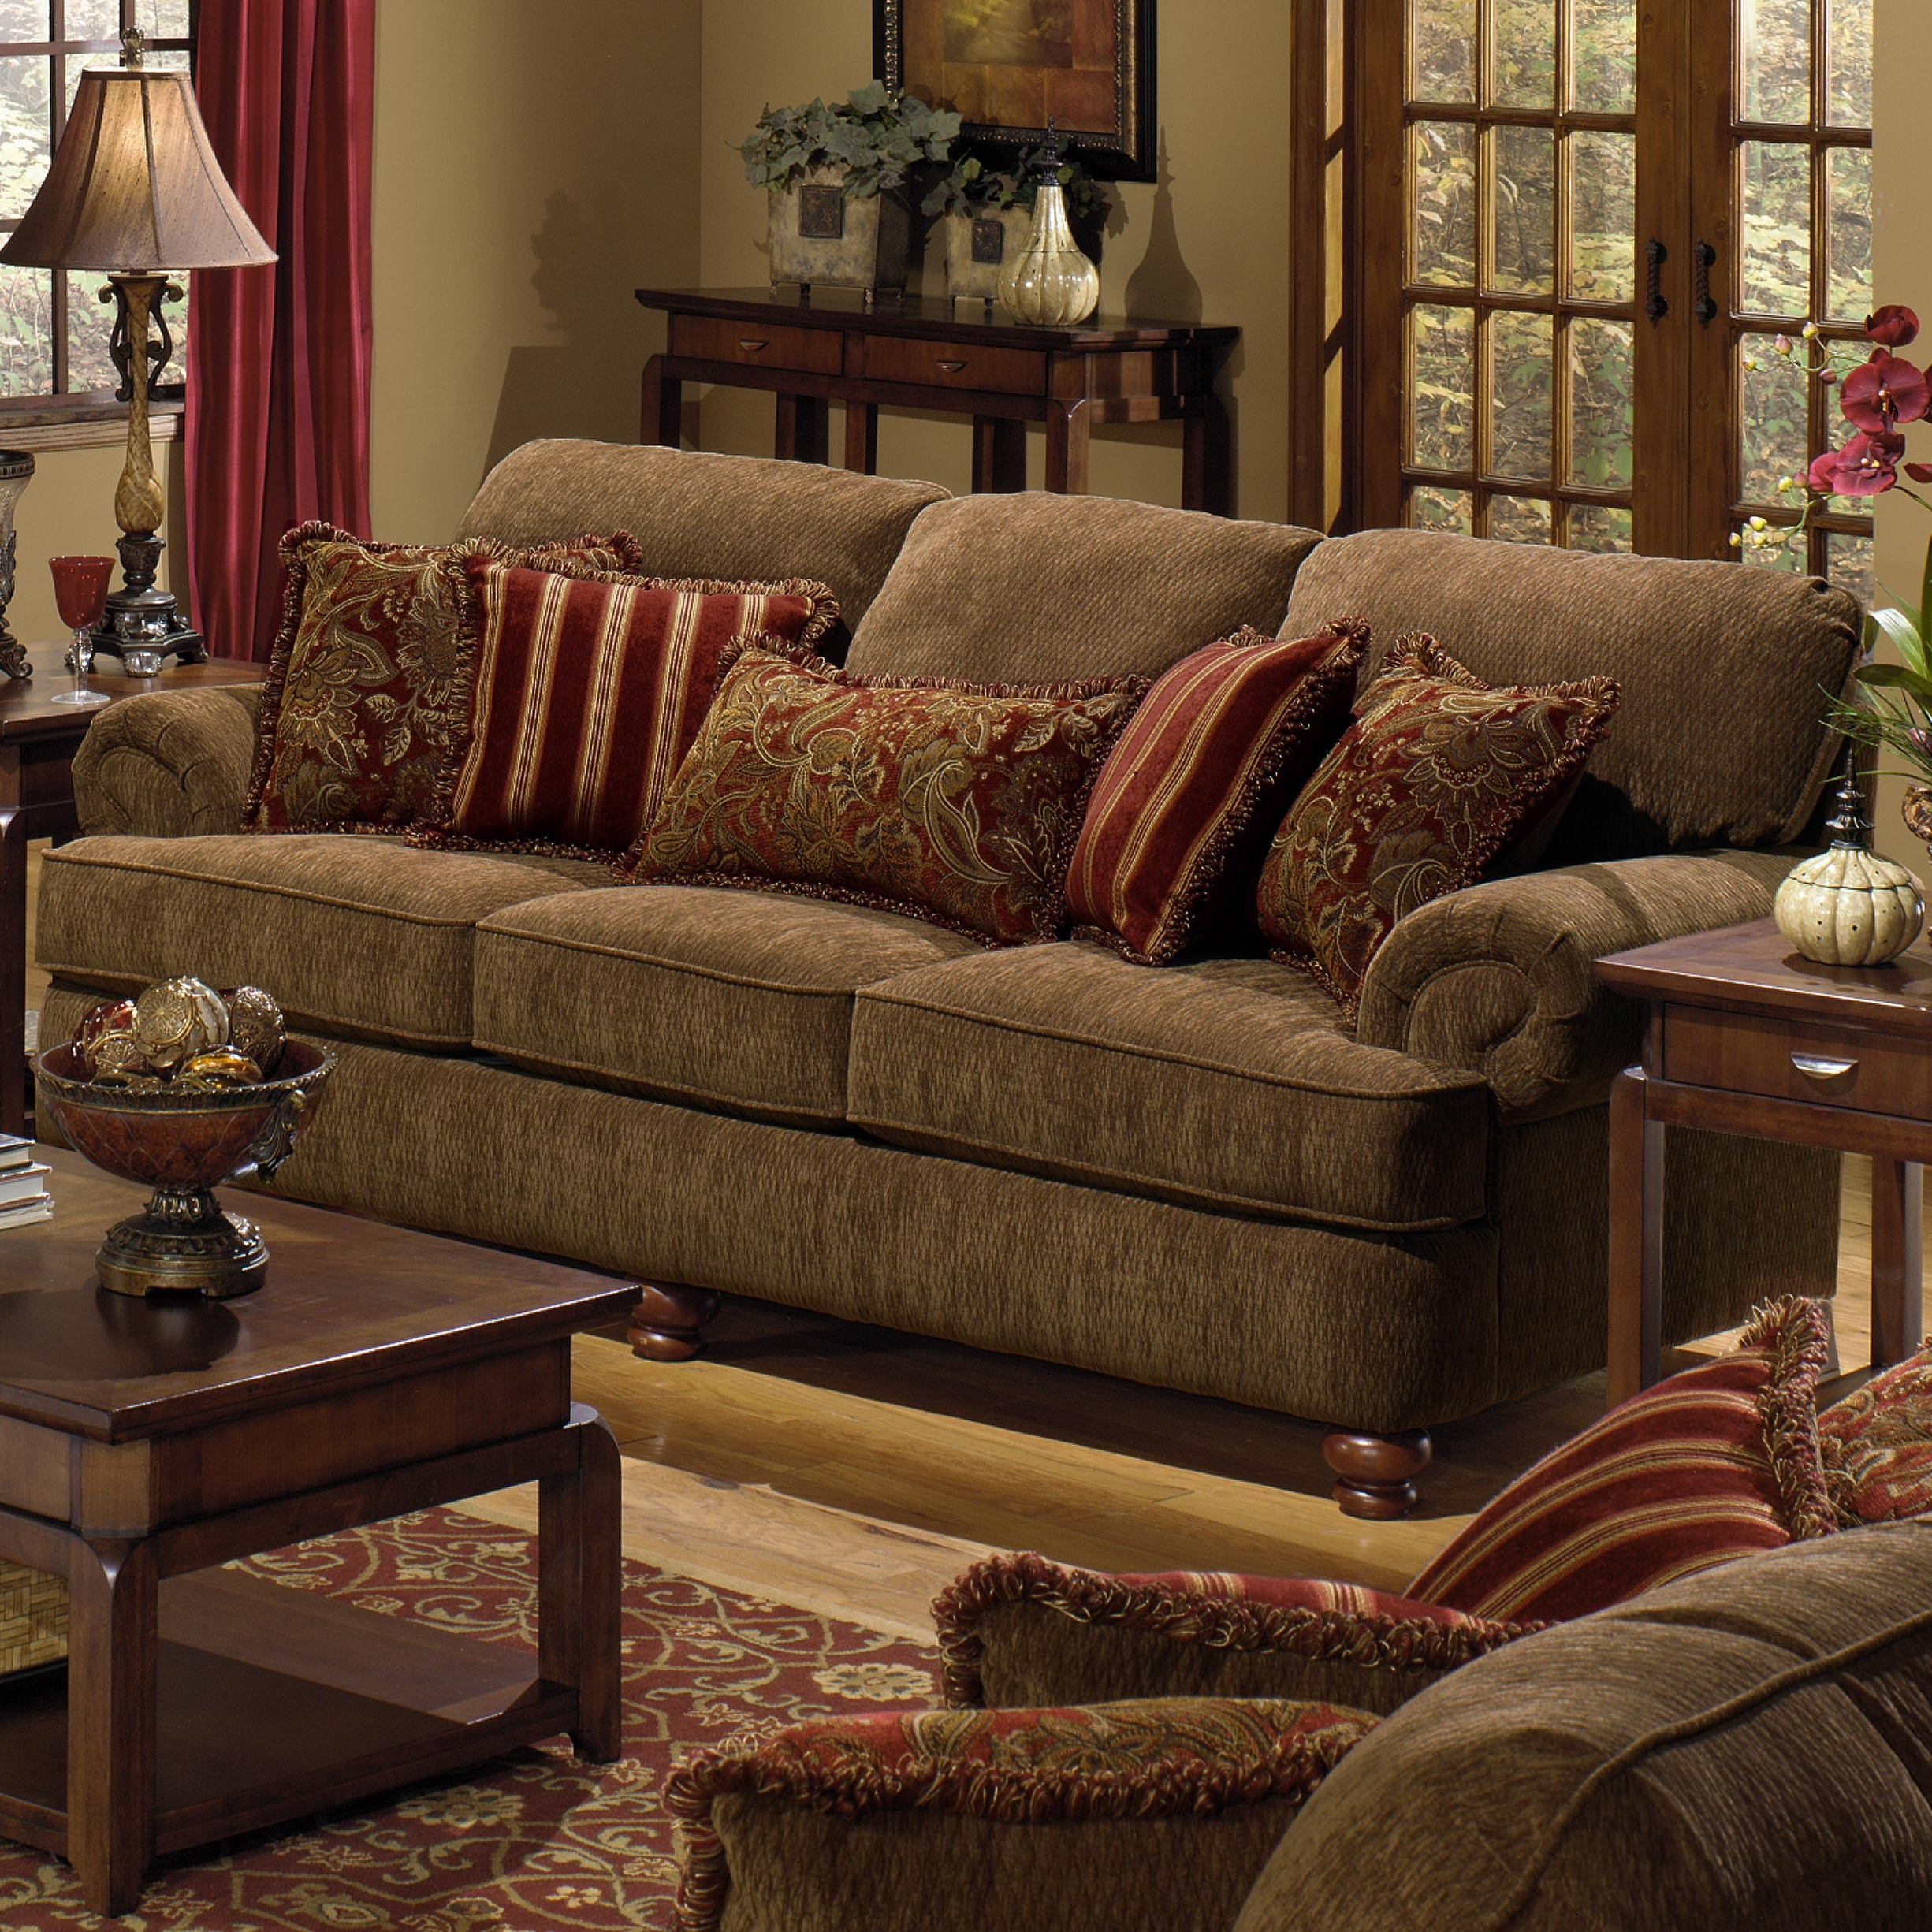 Current Living Room : Decorative Pillows For Sofa Cheap Decorative With Sofas With Oversized Pillows (View 3 of 20)